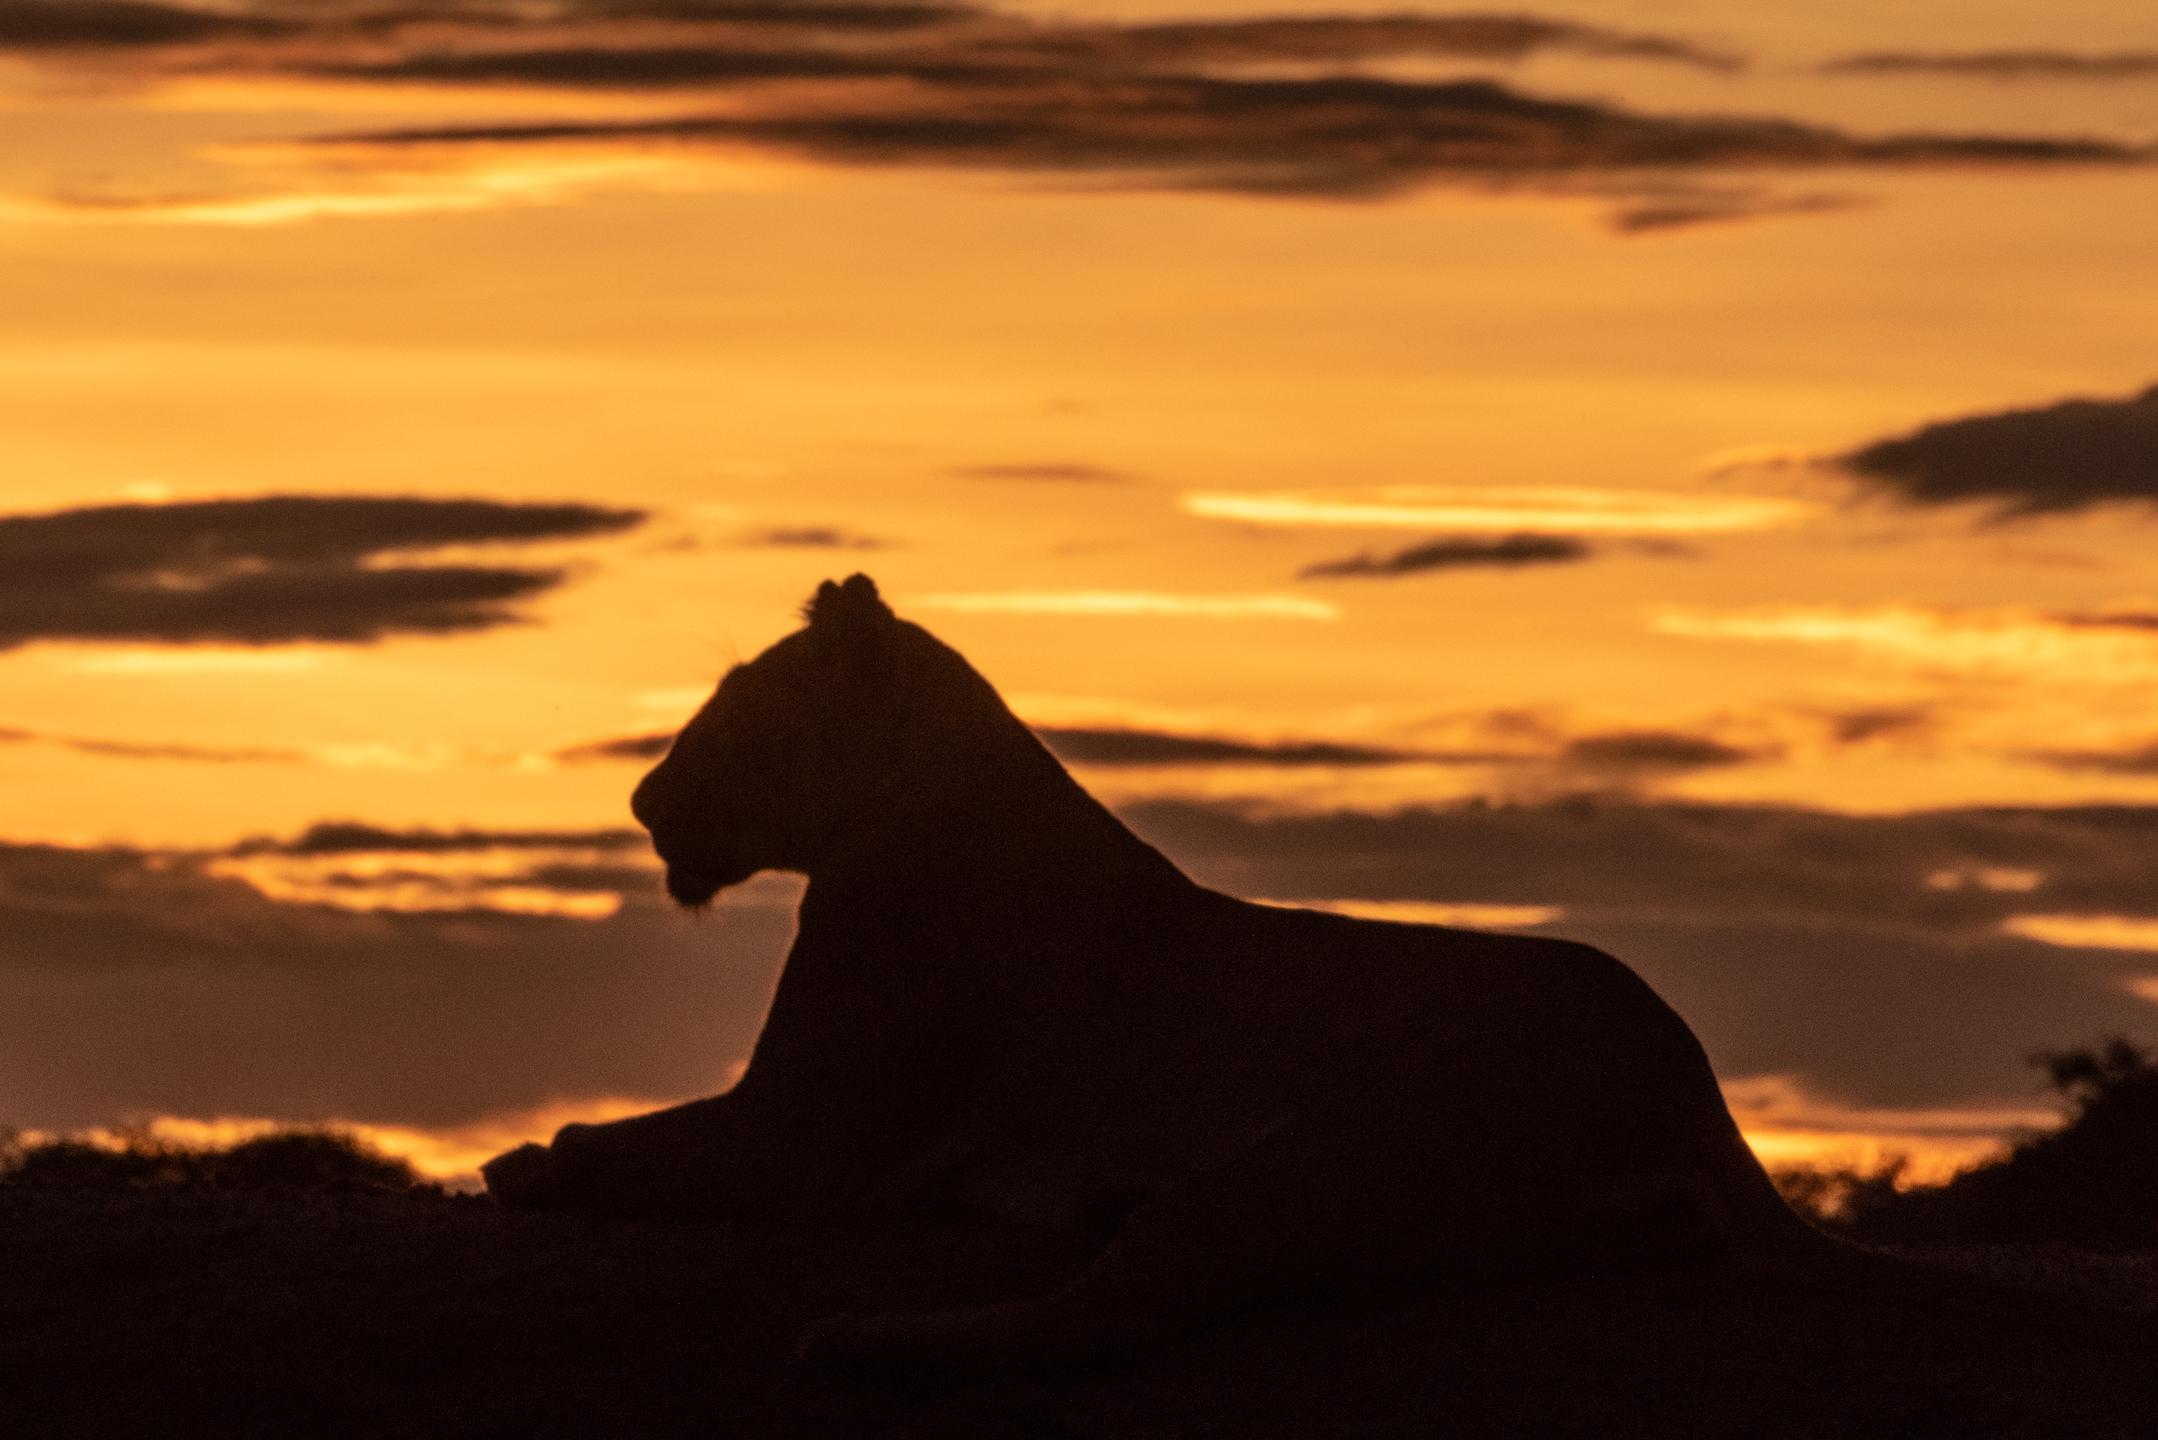 Lioness in silhouette at sunrise on the bank of the Maji Mbele pool